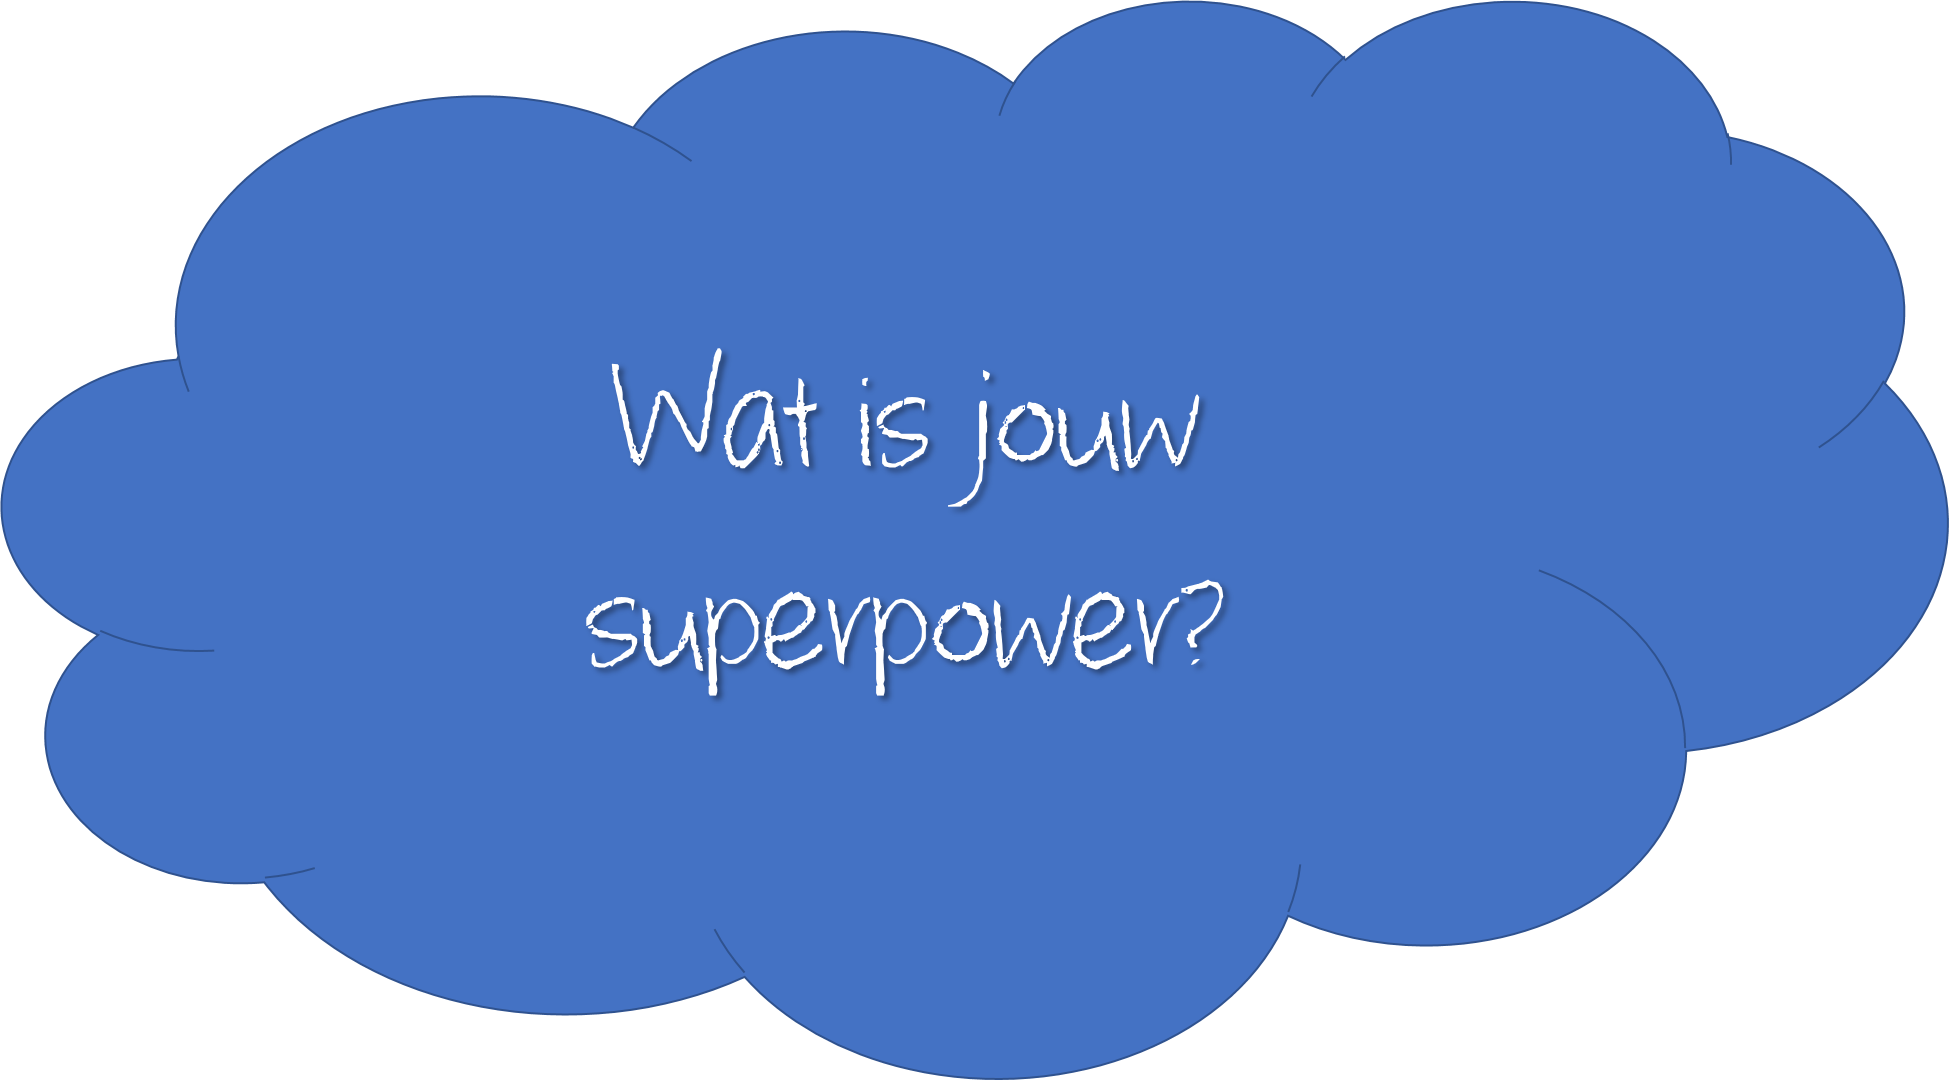 Jouw superpower